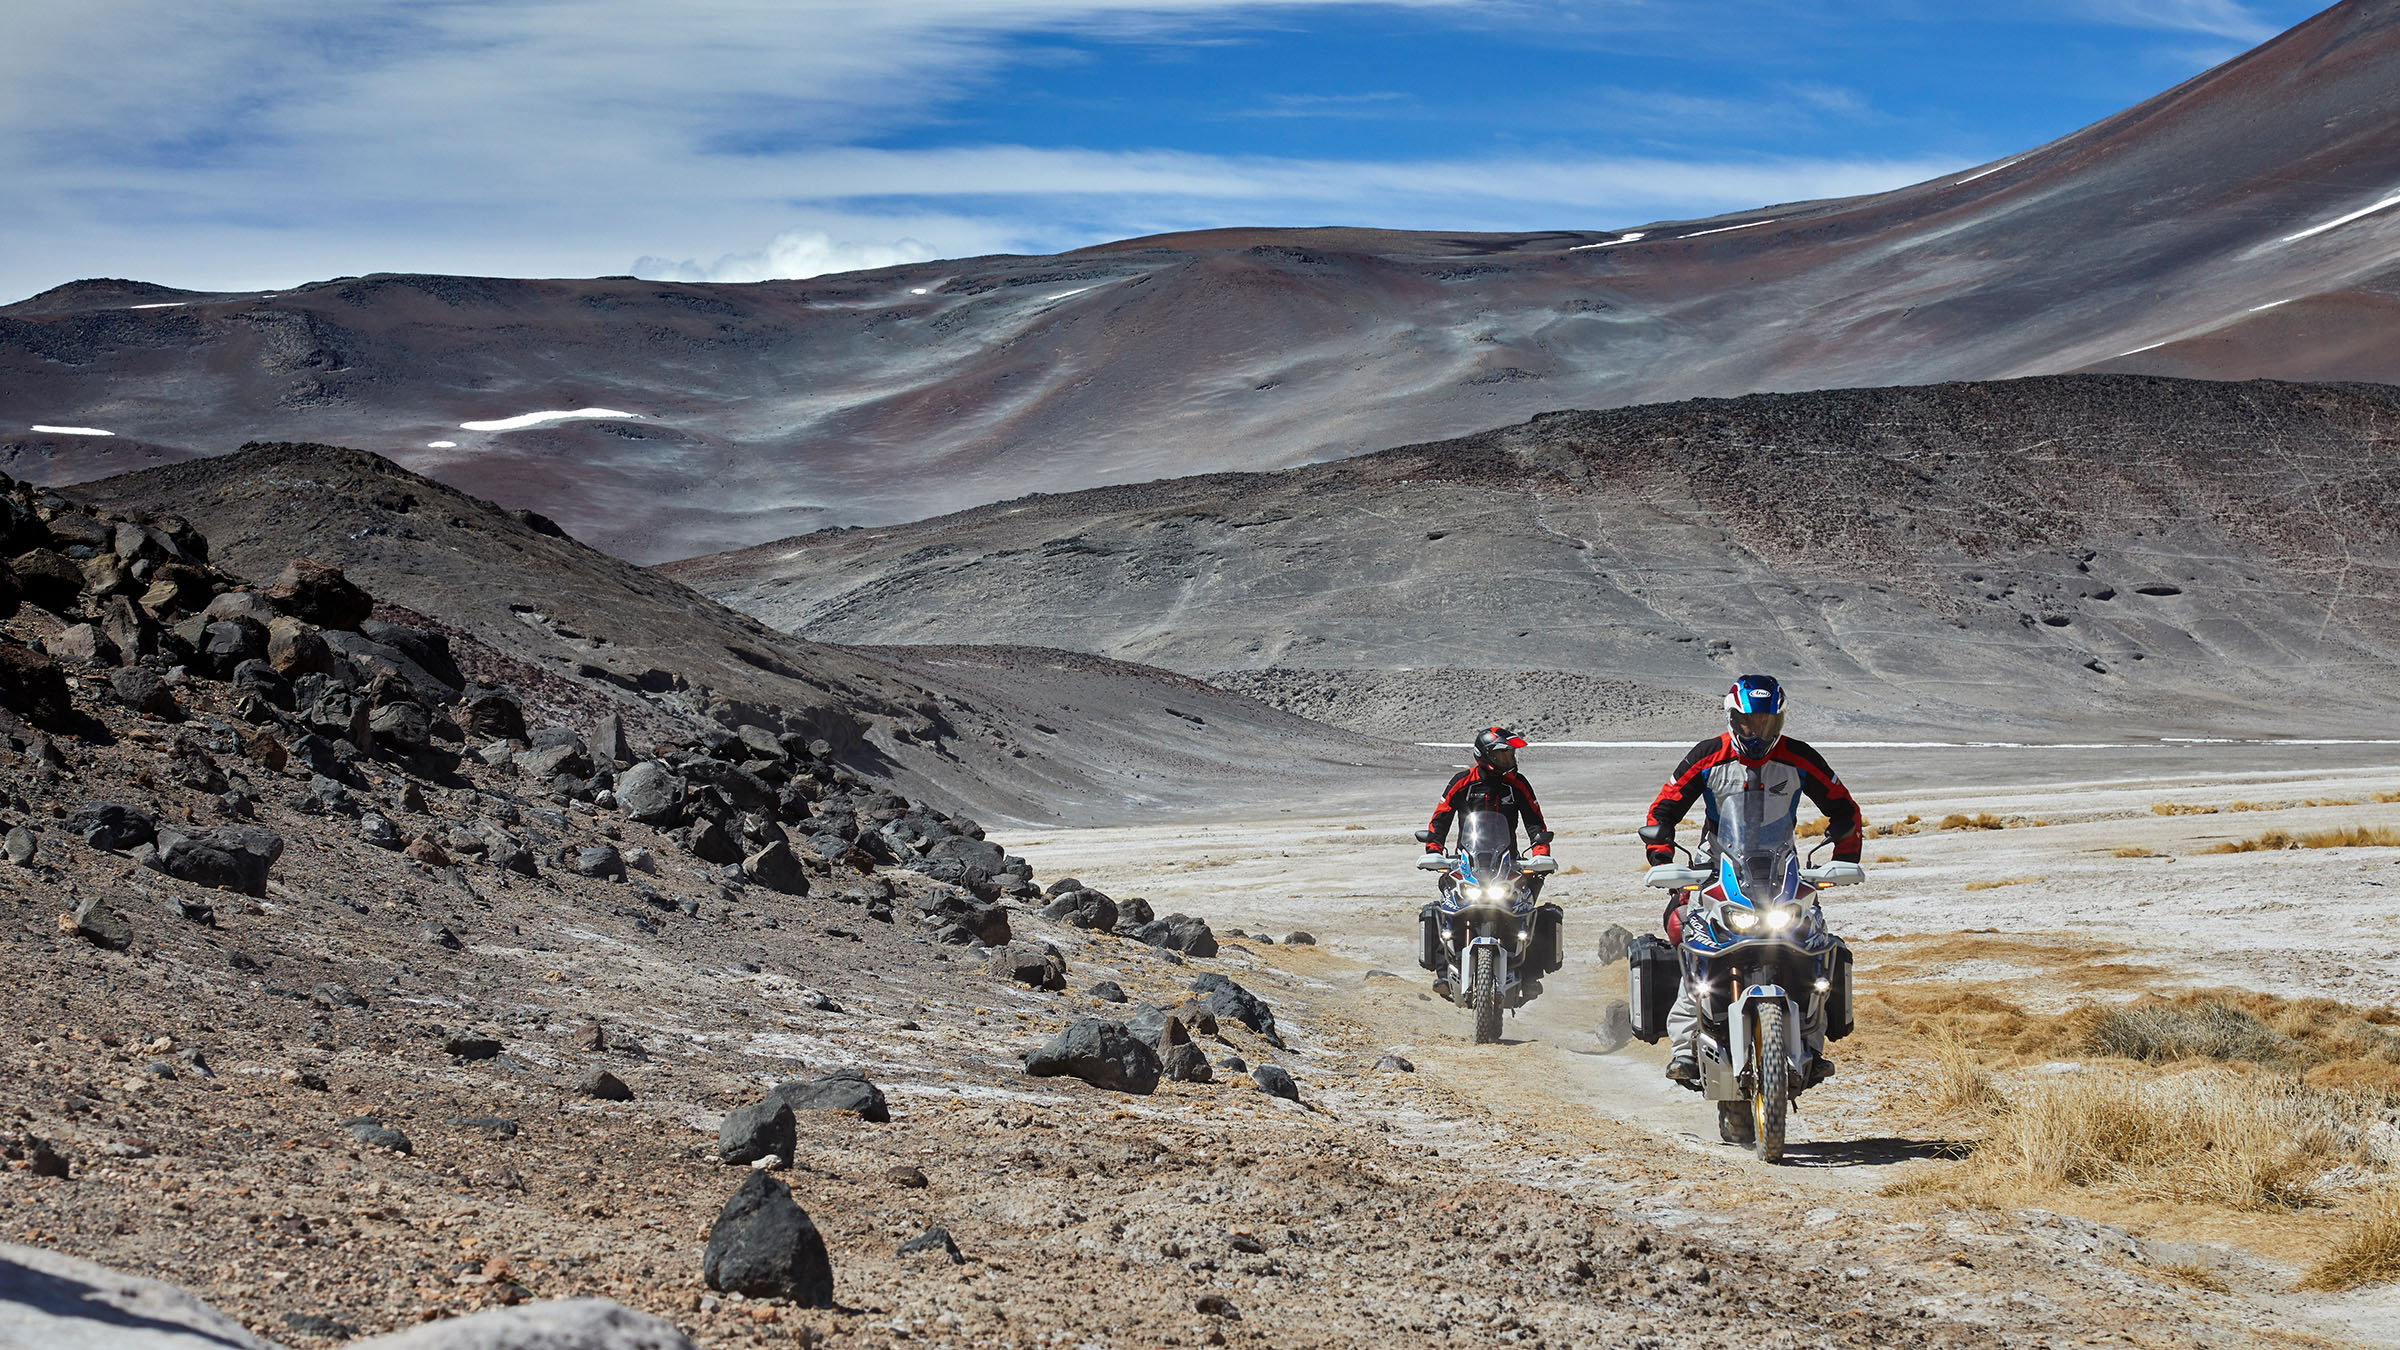 Africa Twin riders